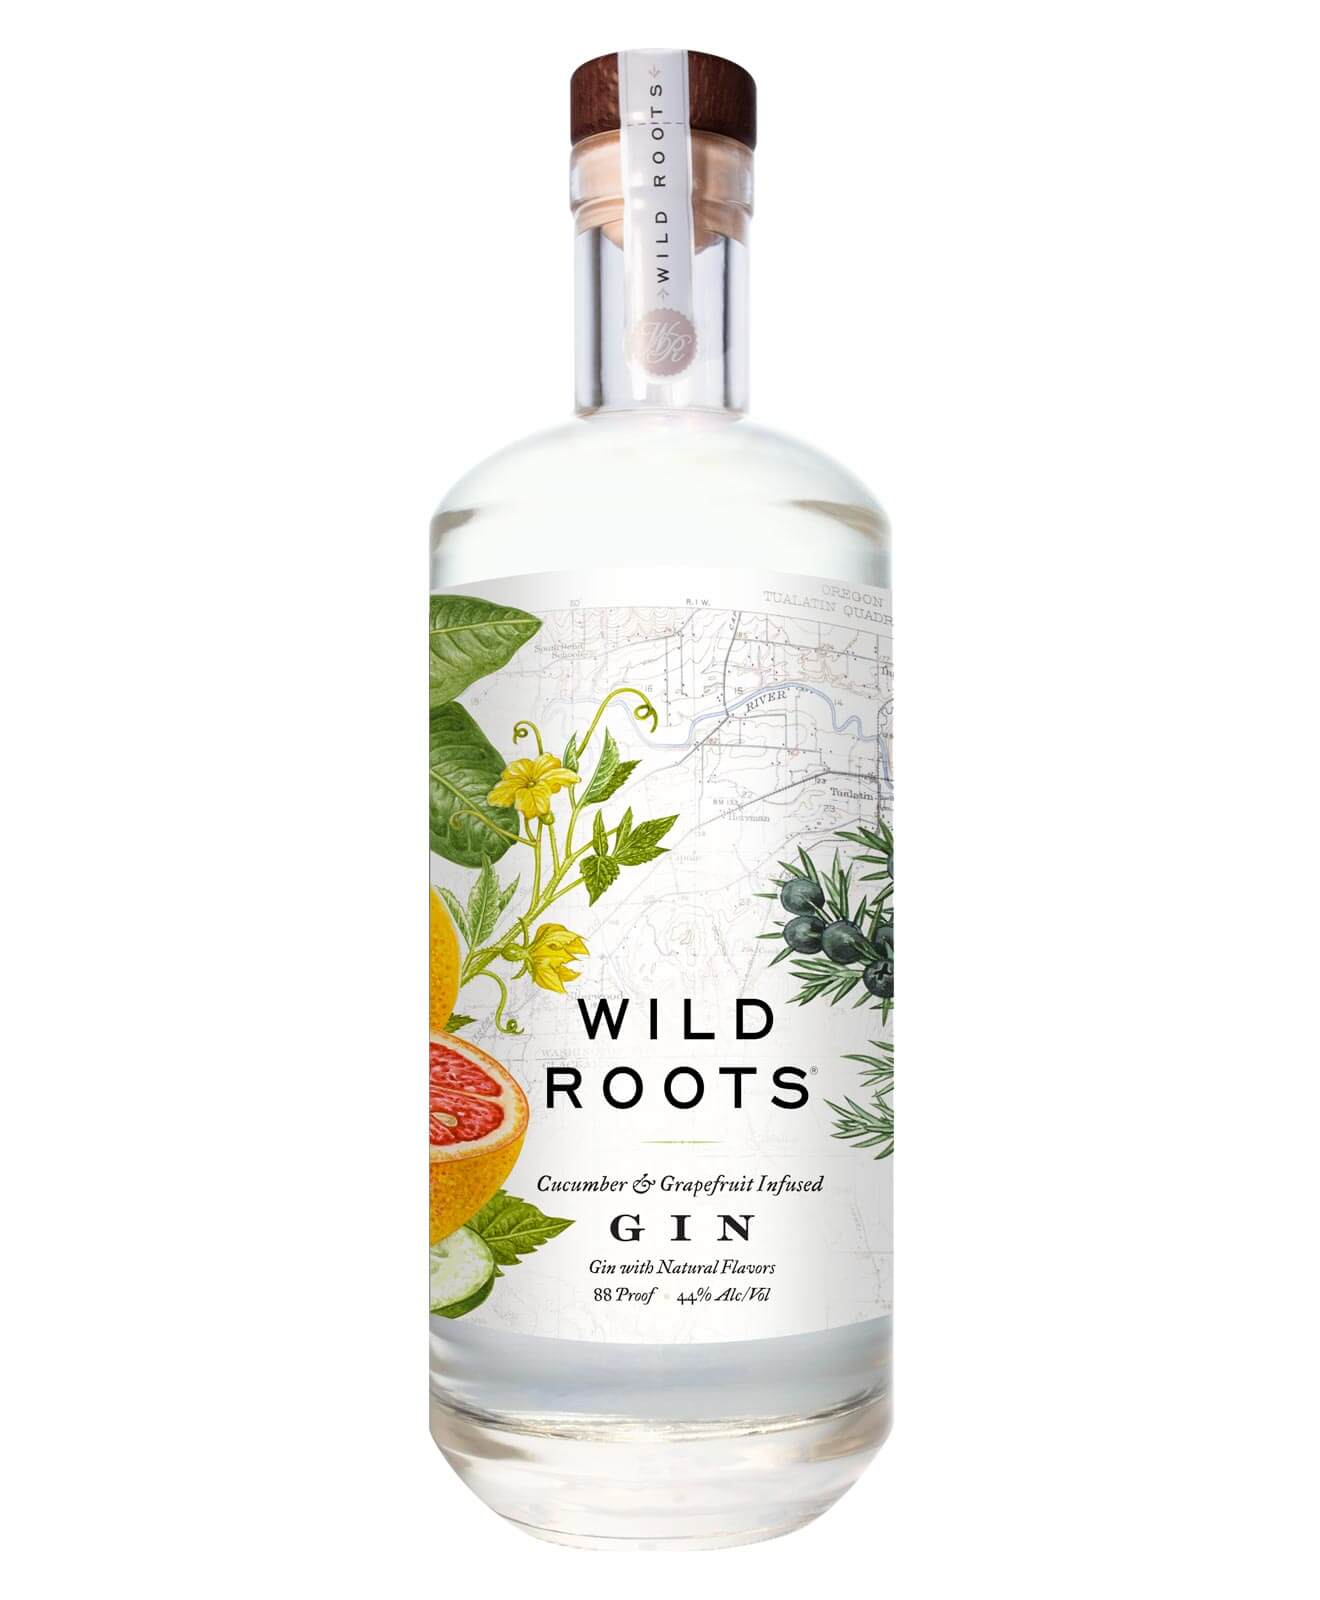 Wild Roots Cucumber & Grapefruit Gin, bottle on white